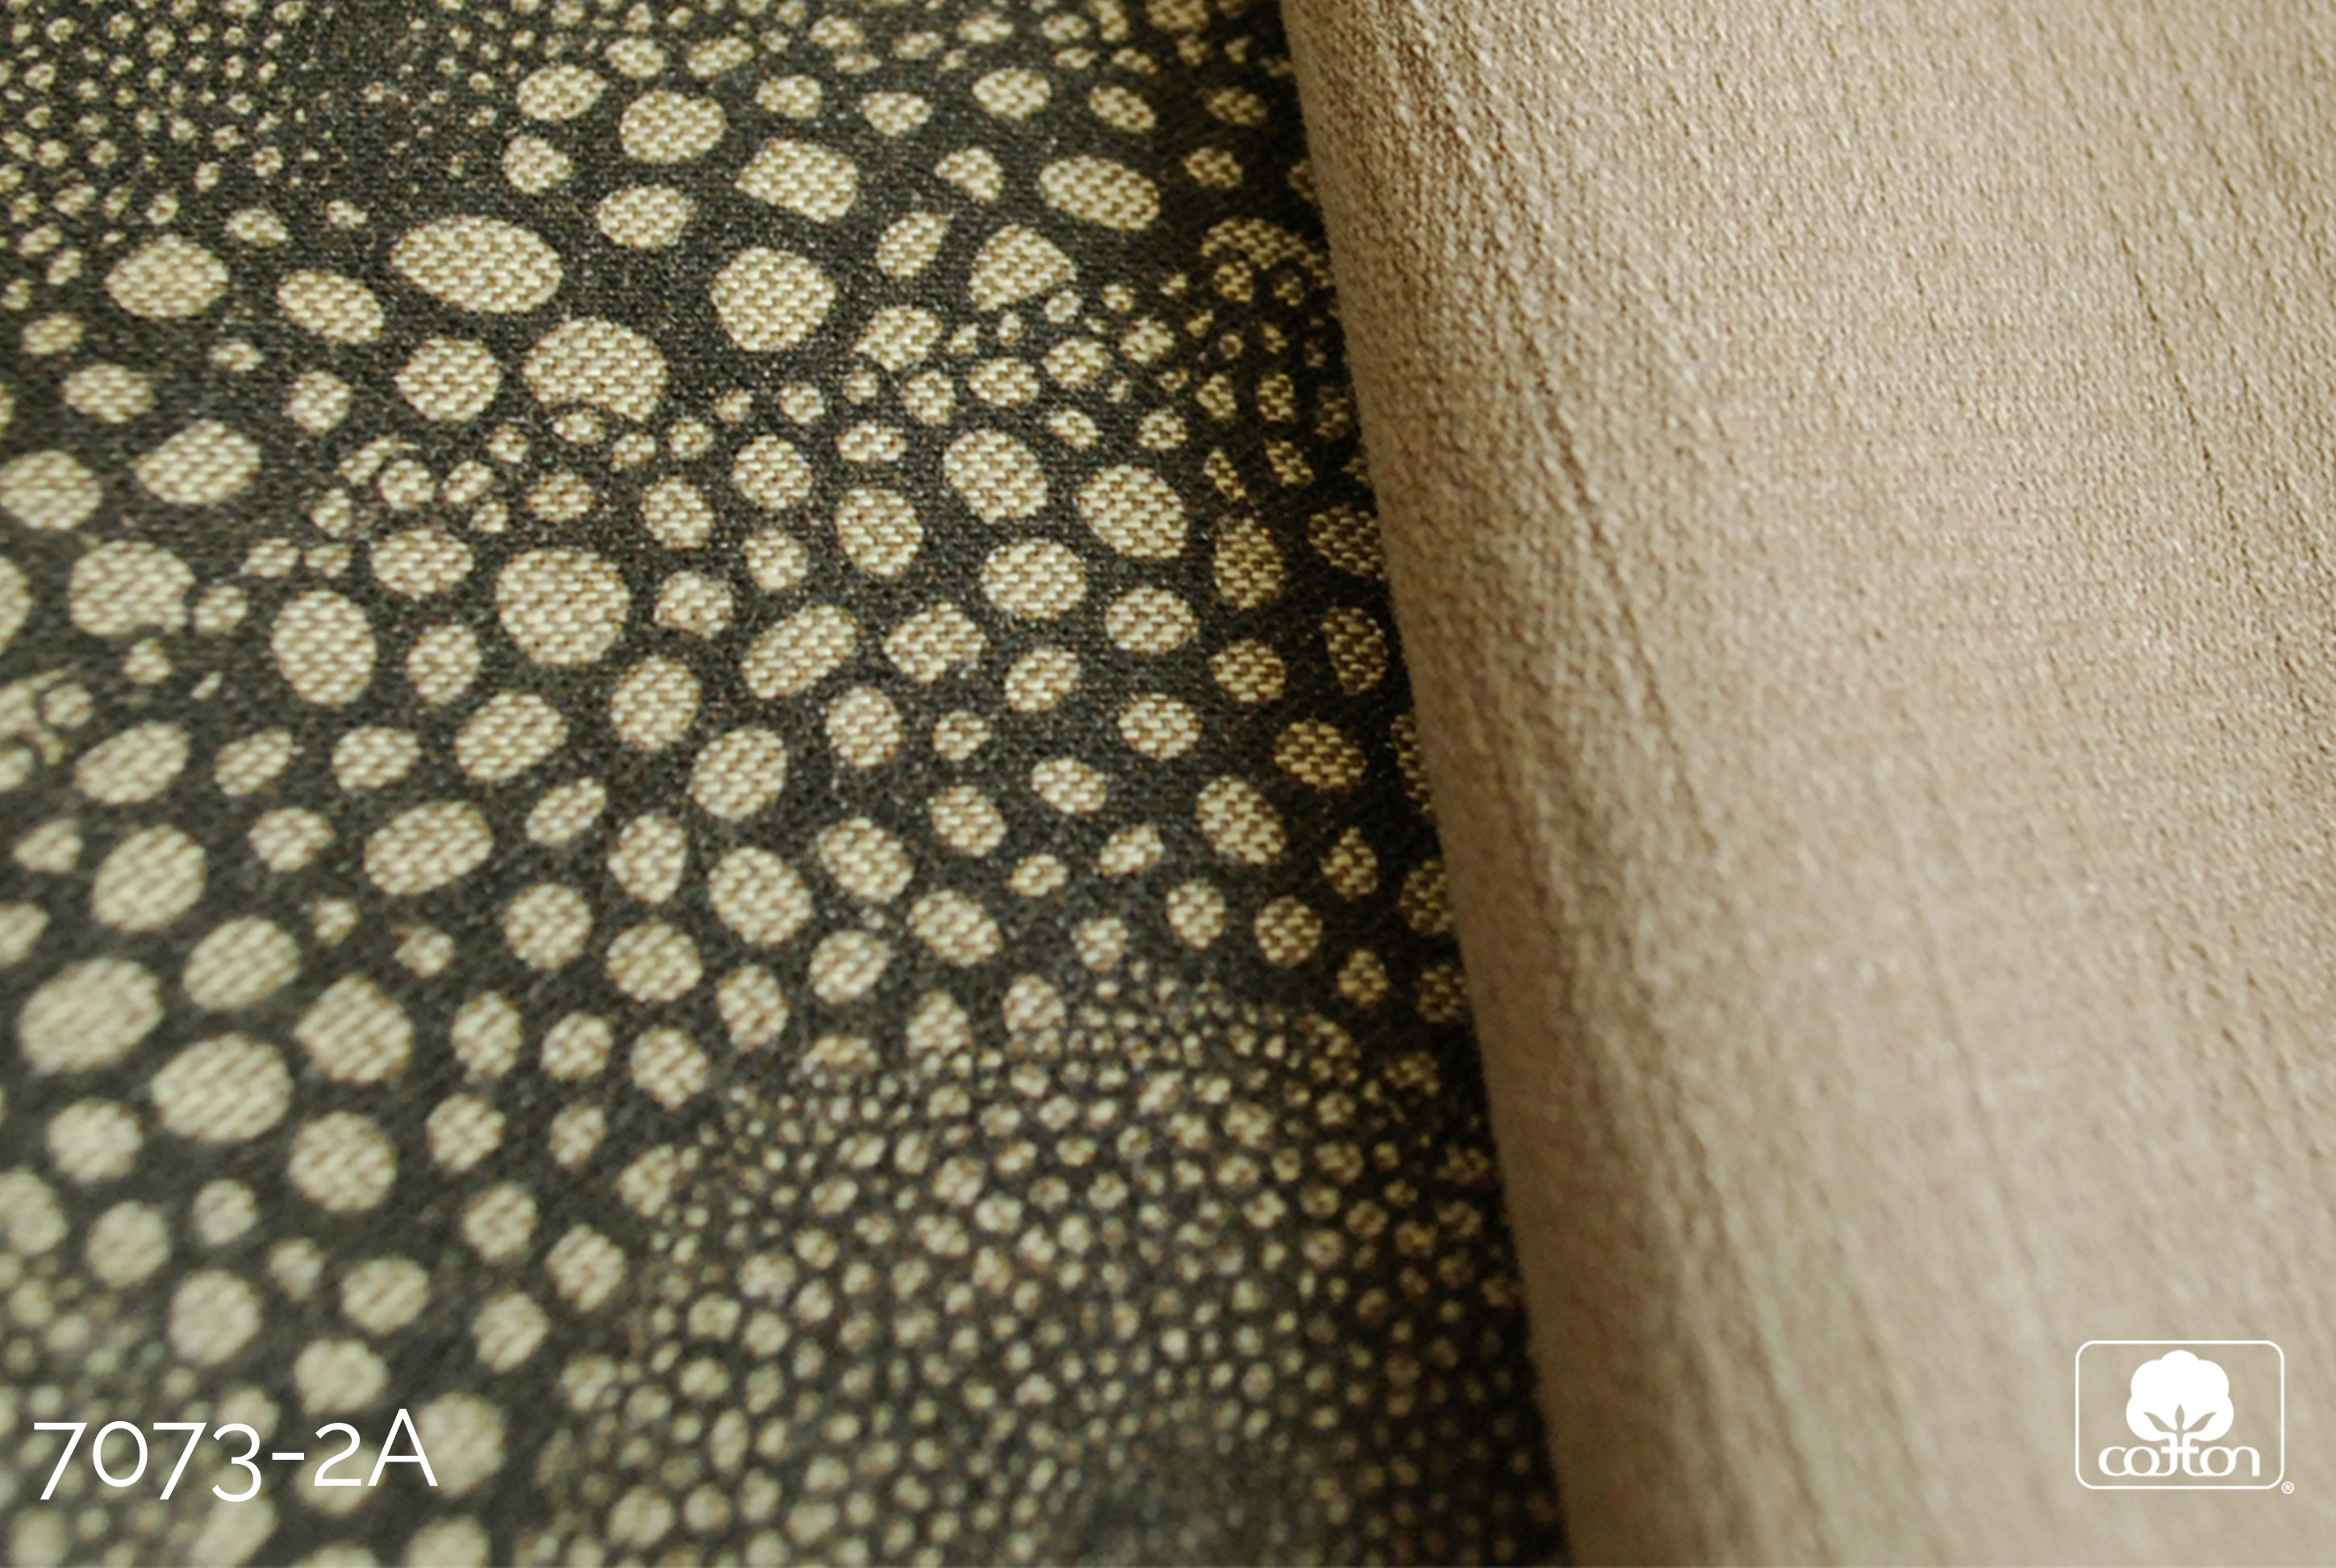 Black and Tan patterned weave fabric